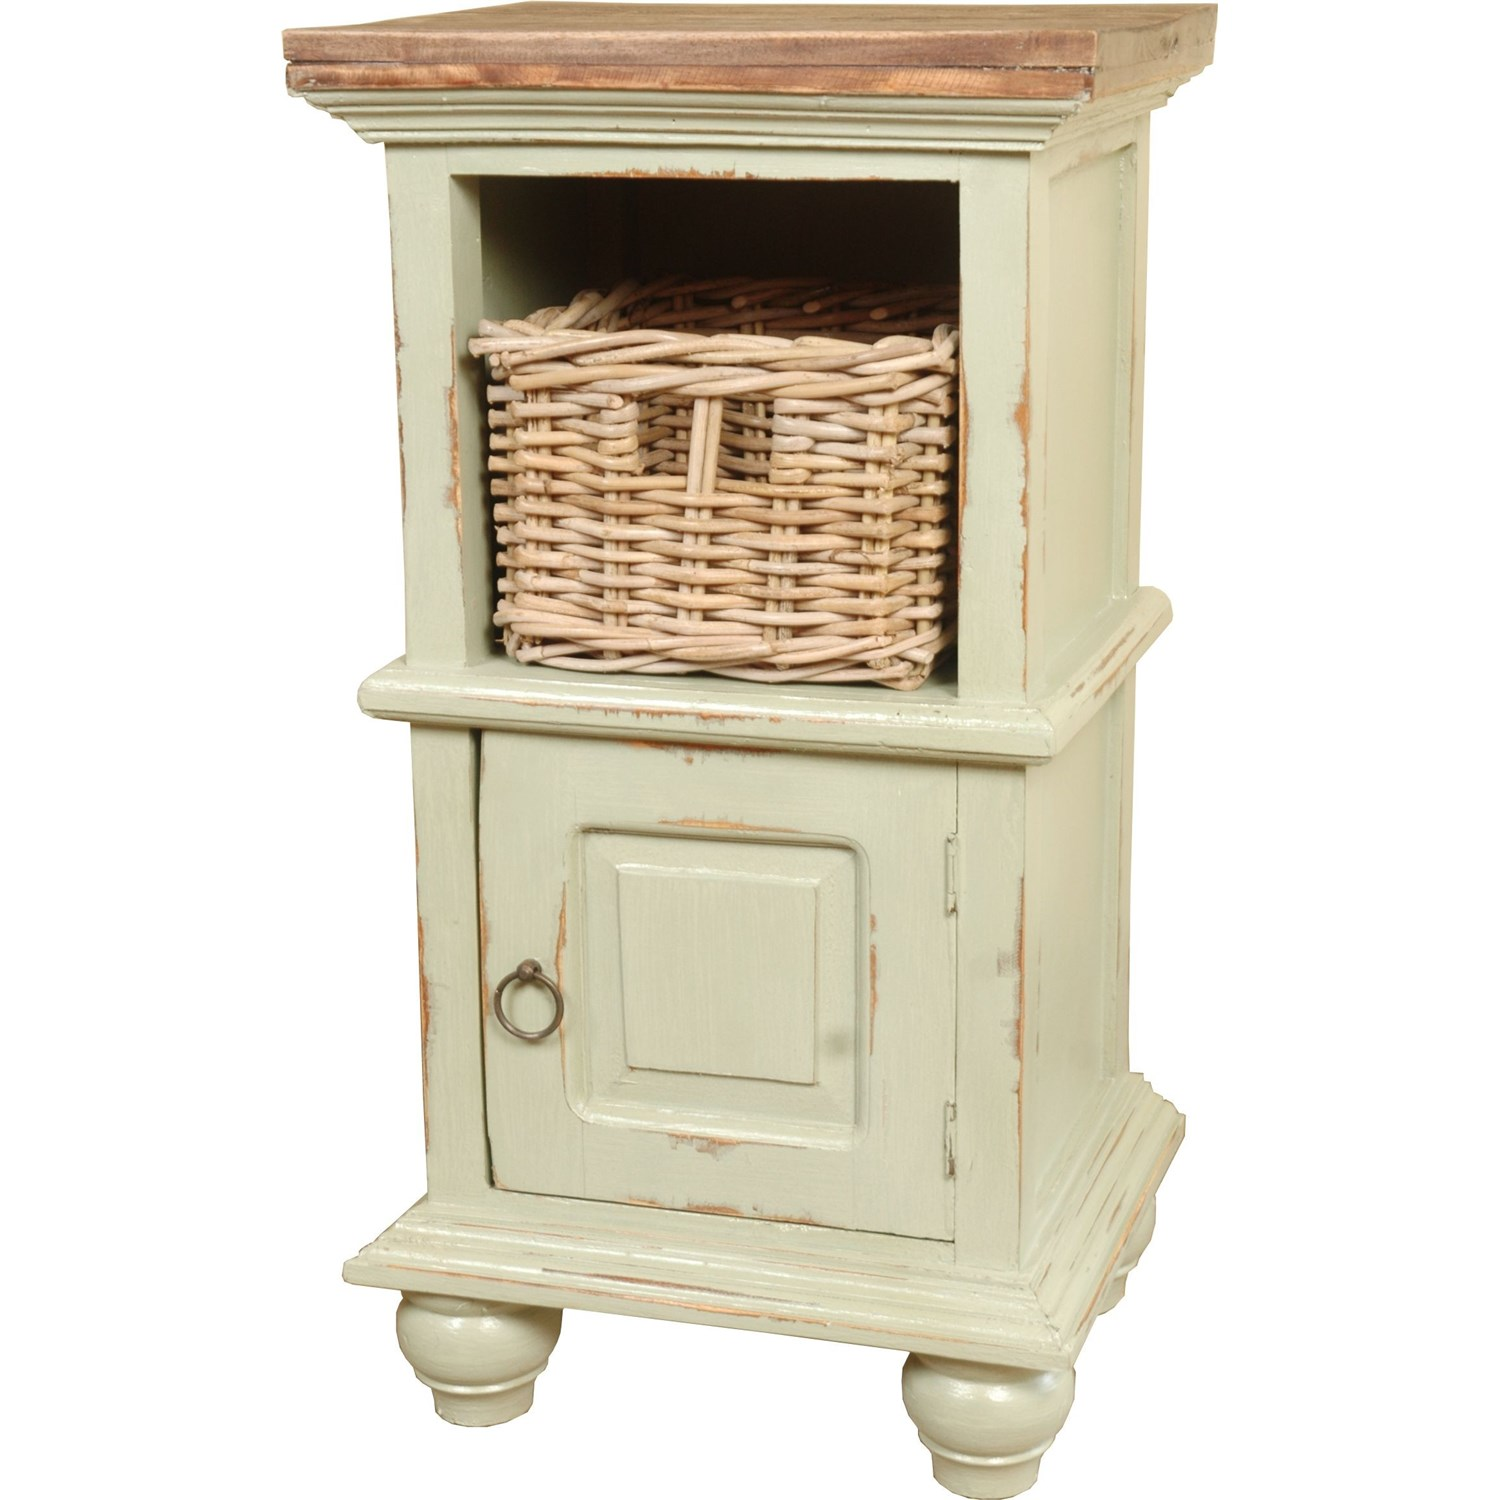 simply casual cottage end table with basket crme accent baskets square legs narrow console ikea lucite coffee nautical outdoor lighting sconces ashley signature wooden shelving